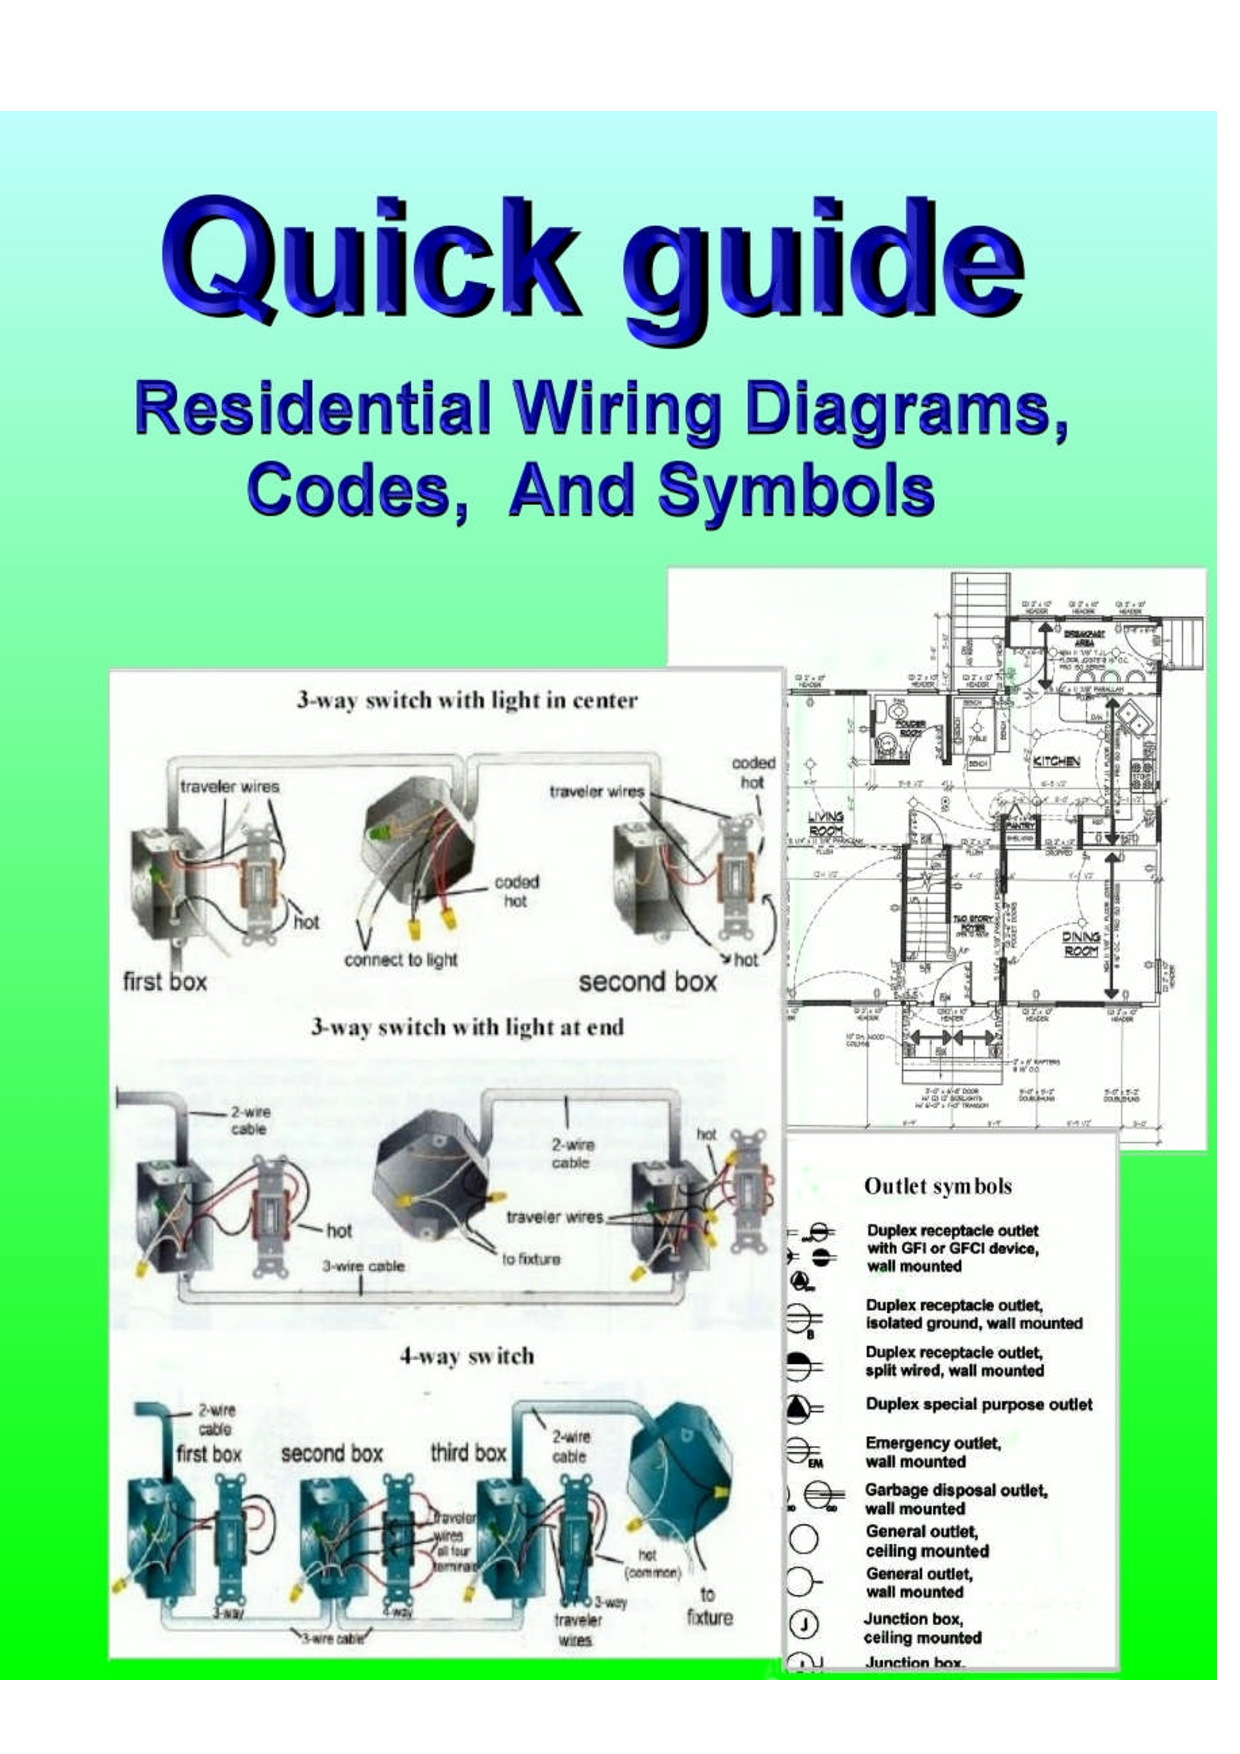 Surprising Residential Electric Wiring Diagrams Wiring Diagram Wiring Cloud Funidienstapotheekhoekschewaardnl